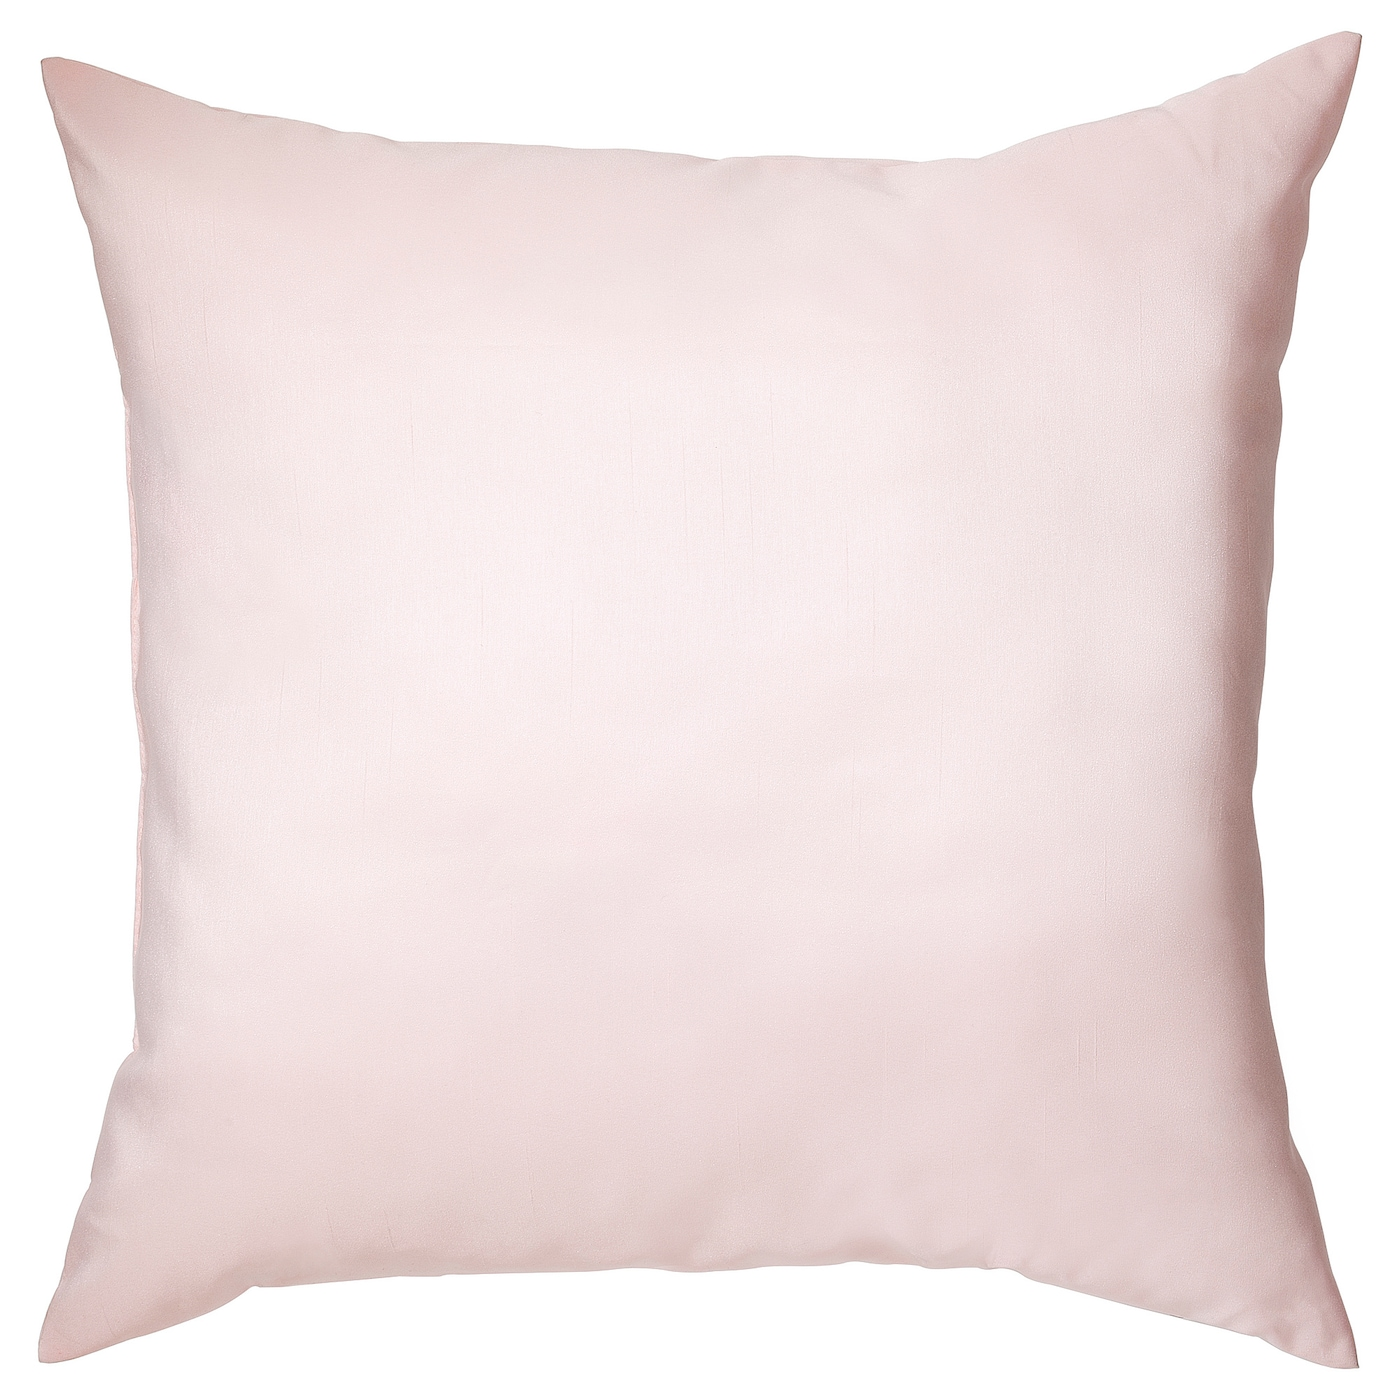 pillows pale pink throw velvet pair chairish pillow product a